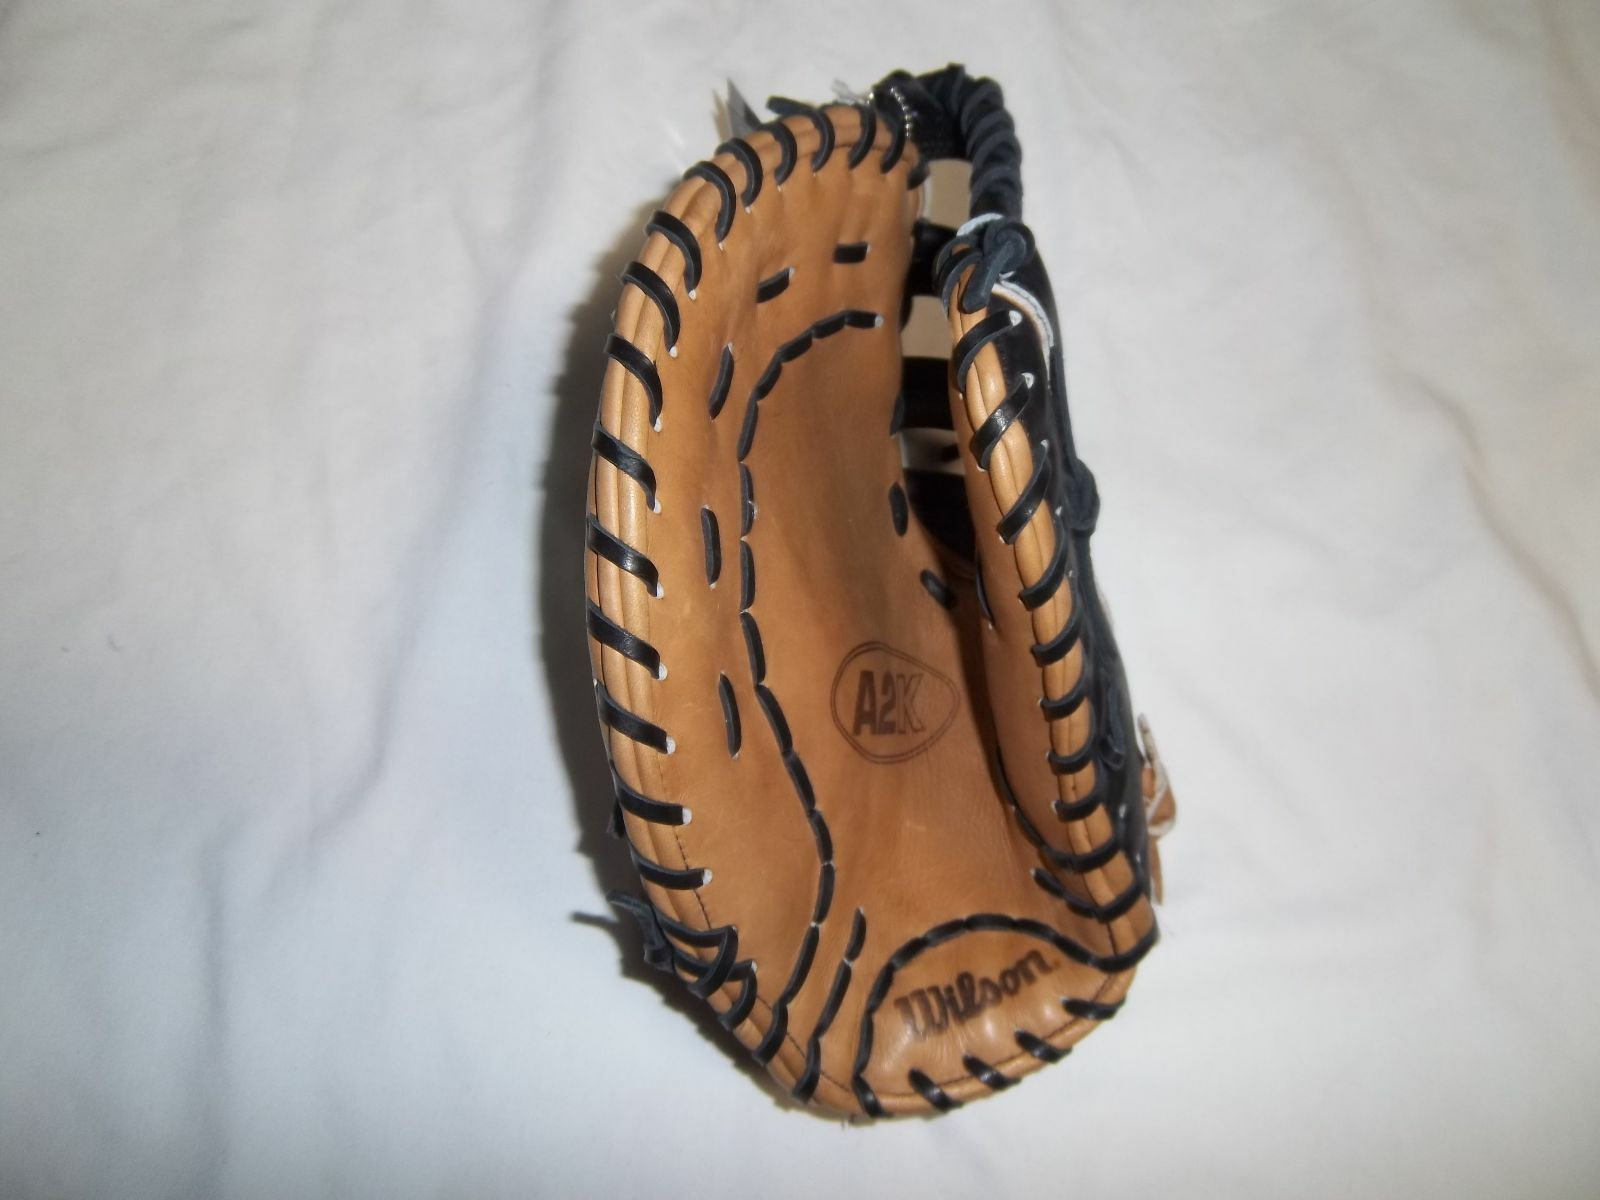 WILSON A2K 2802 BROWN TAN FIRST BASE MITT 12'  LH PLAYER GOES ON RIGHT  HAND